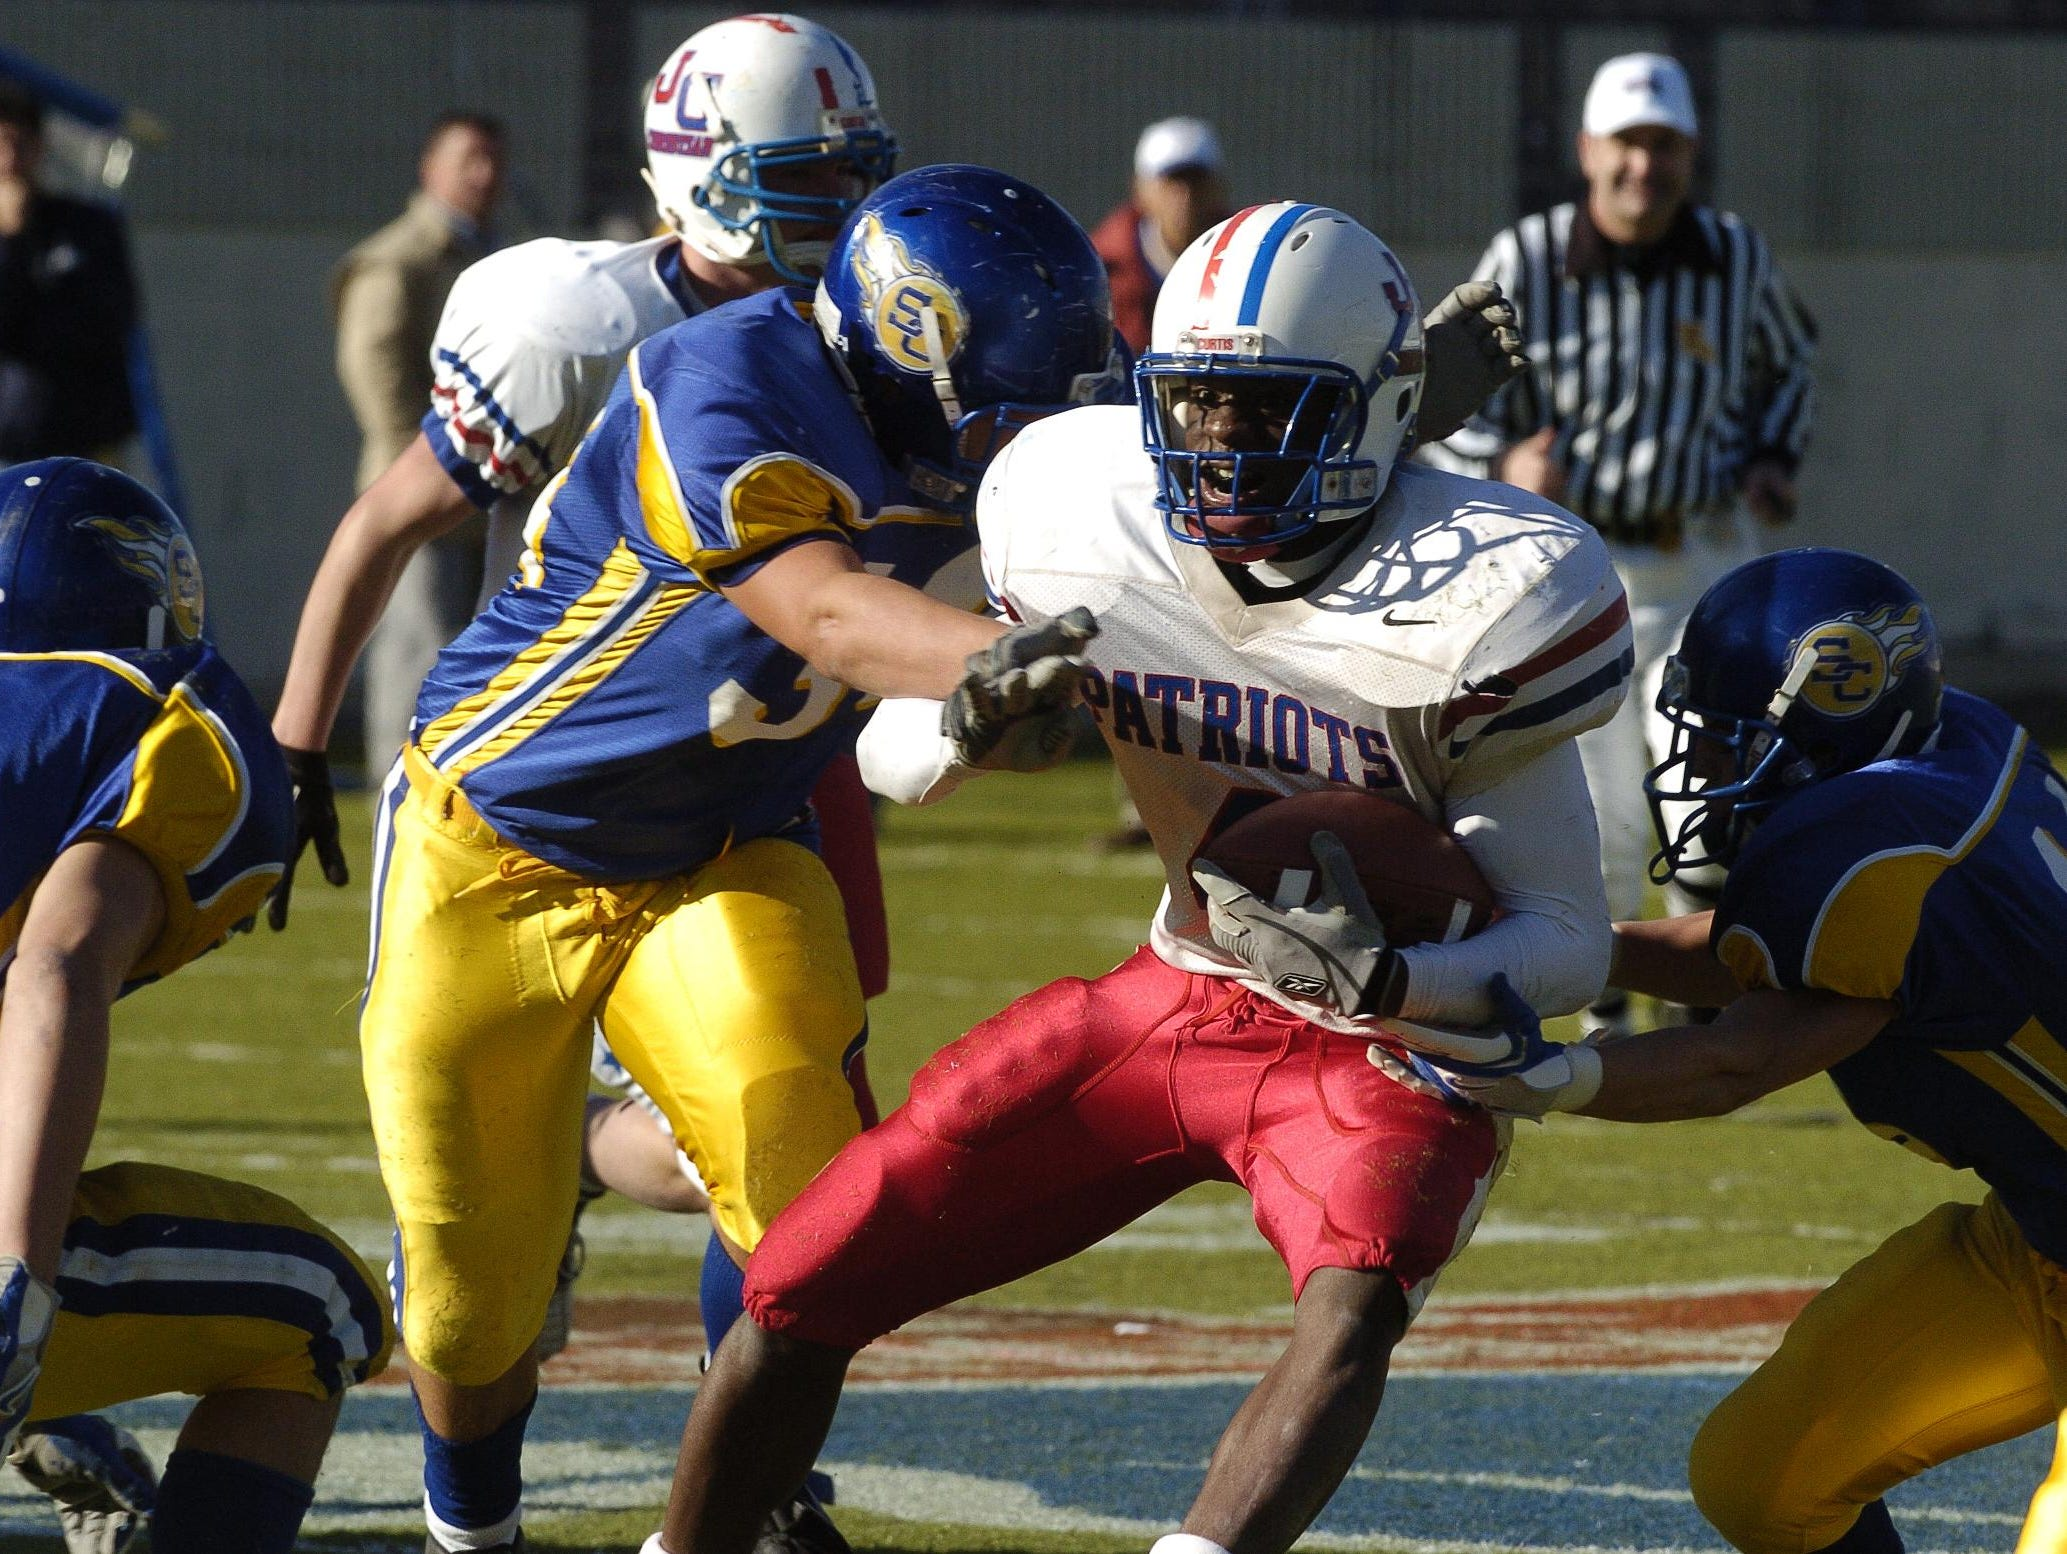 Former John Curtis wide receiver Joe McKnight (4) was named his team's most oustanding player in the 2005 Class 2A state championship game against St. Charles Catholic at Independence Stadium in Shreveport.